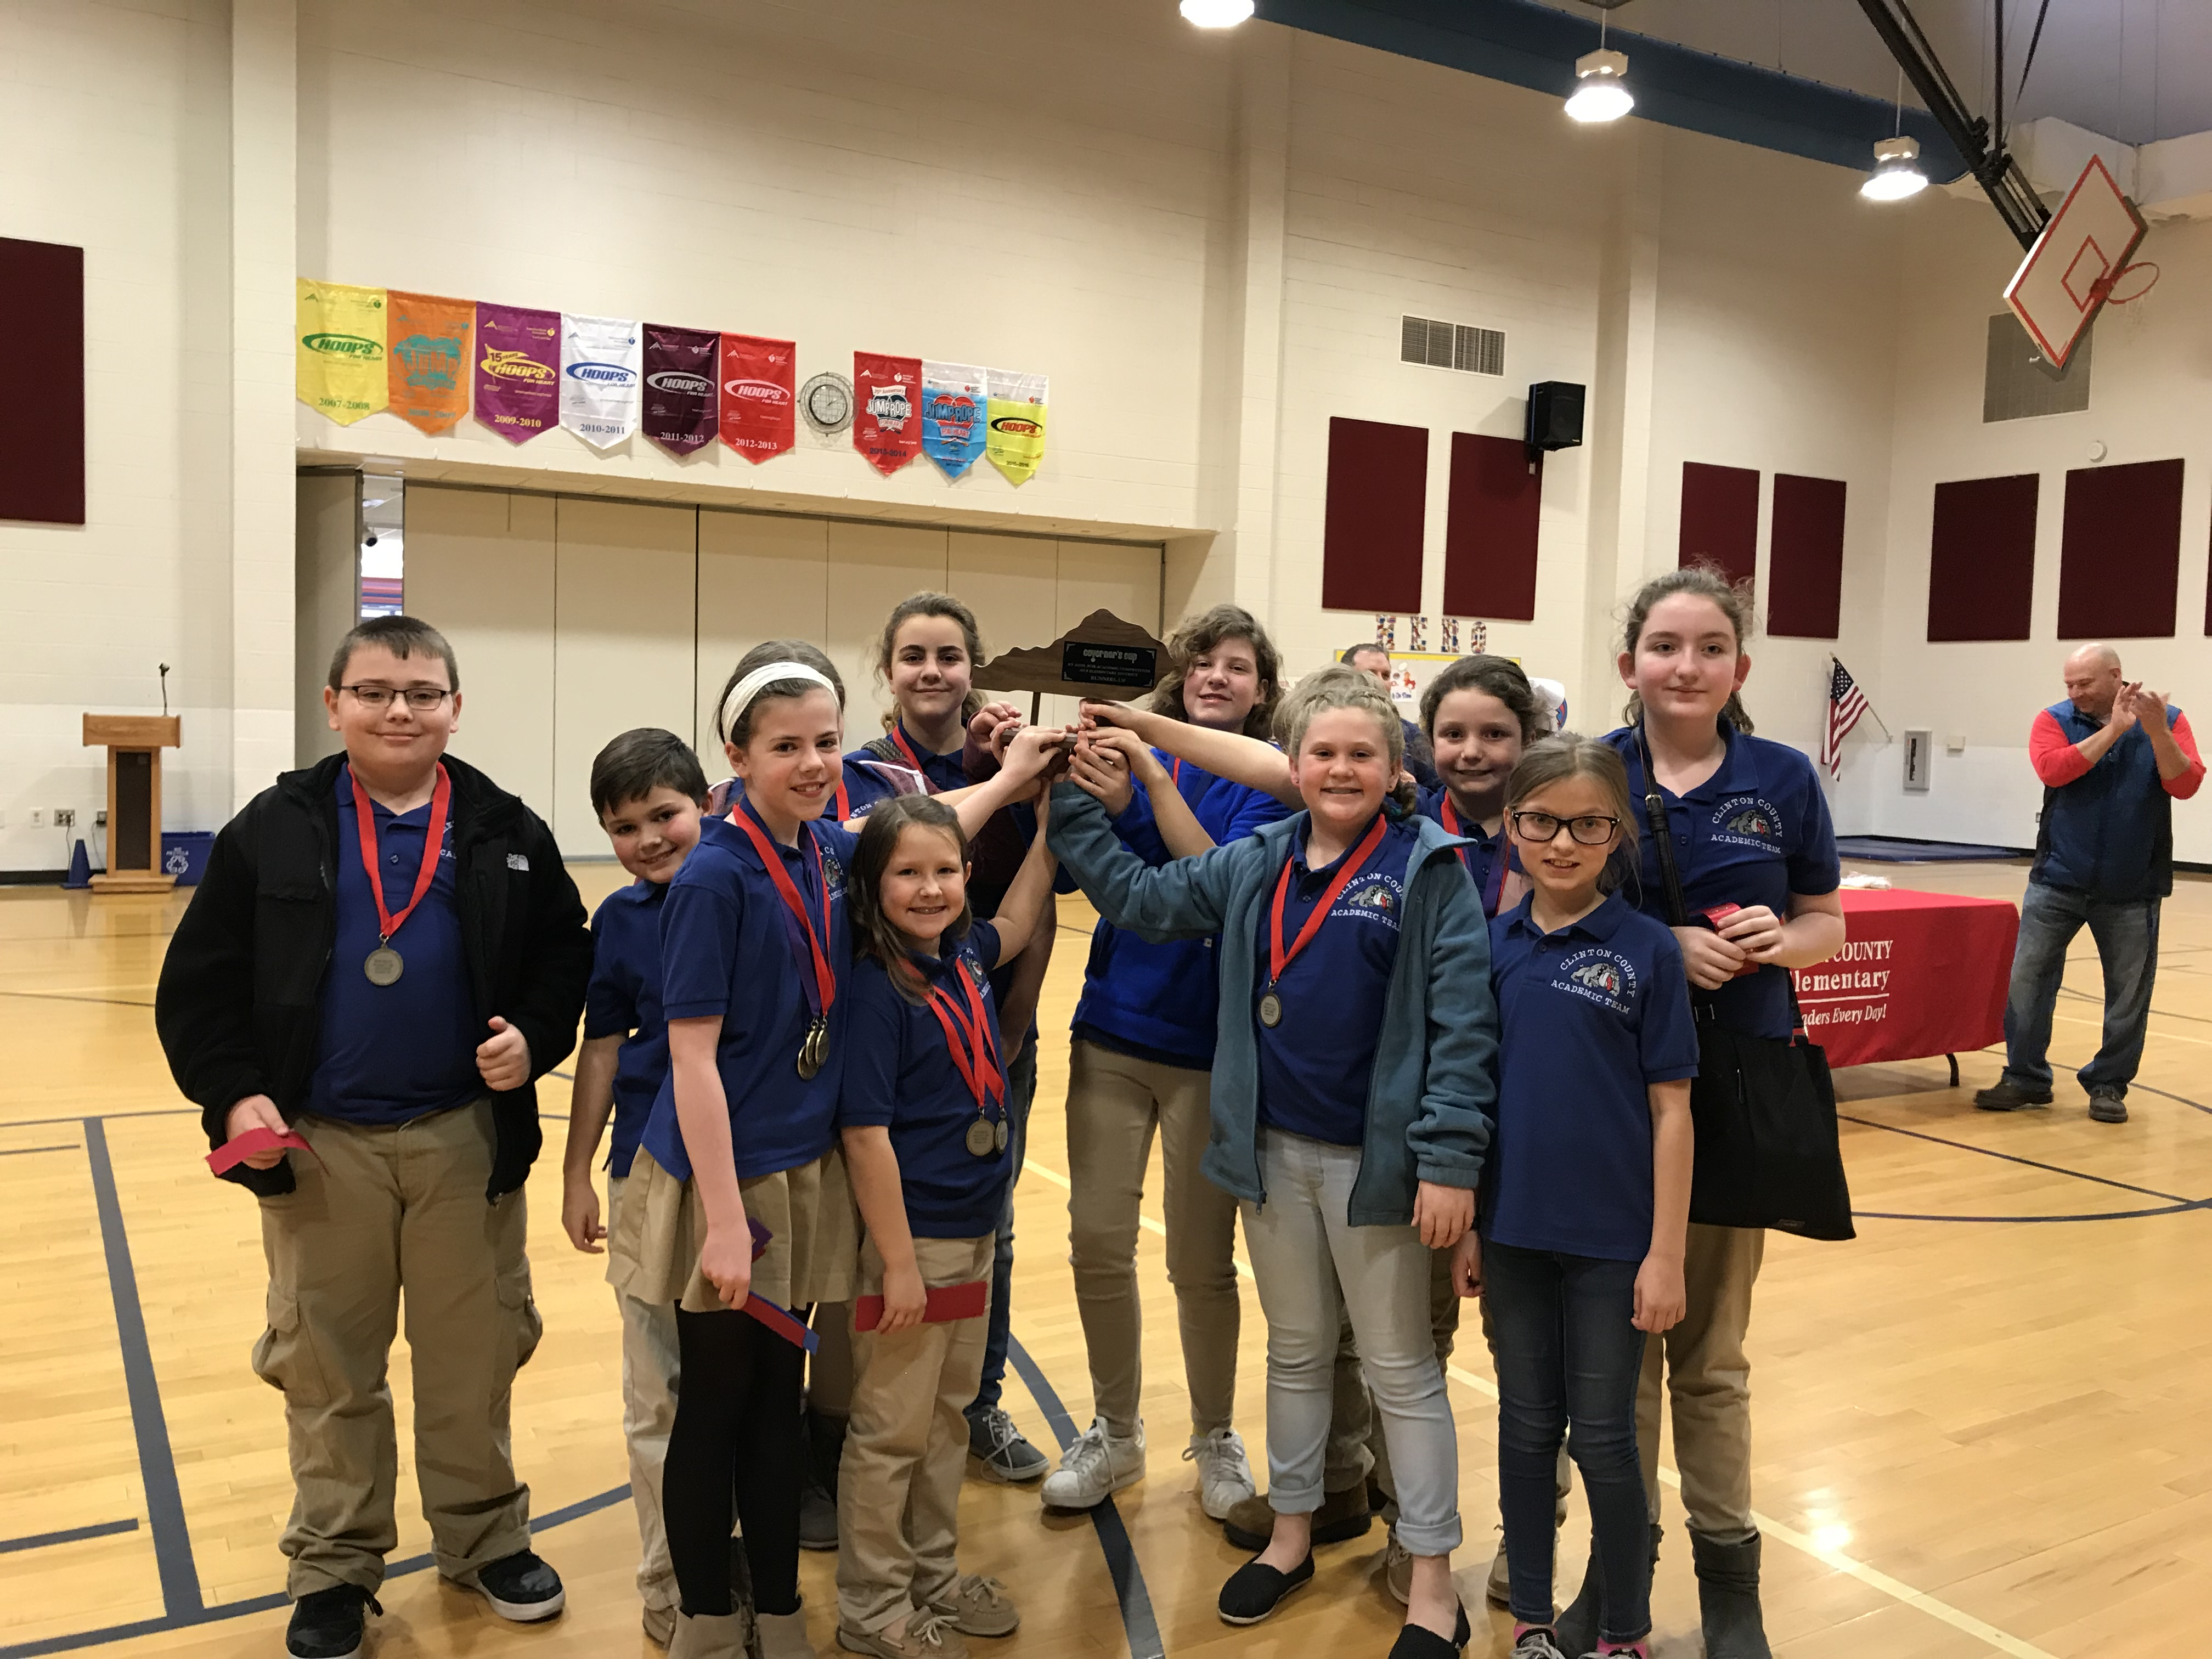 Congratulations to the Elementary Academic Team on being Runner-Up in the District 54 Governor's Cup Competition!